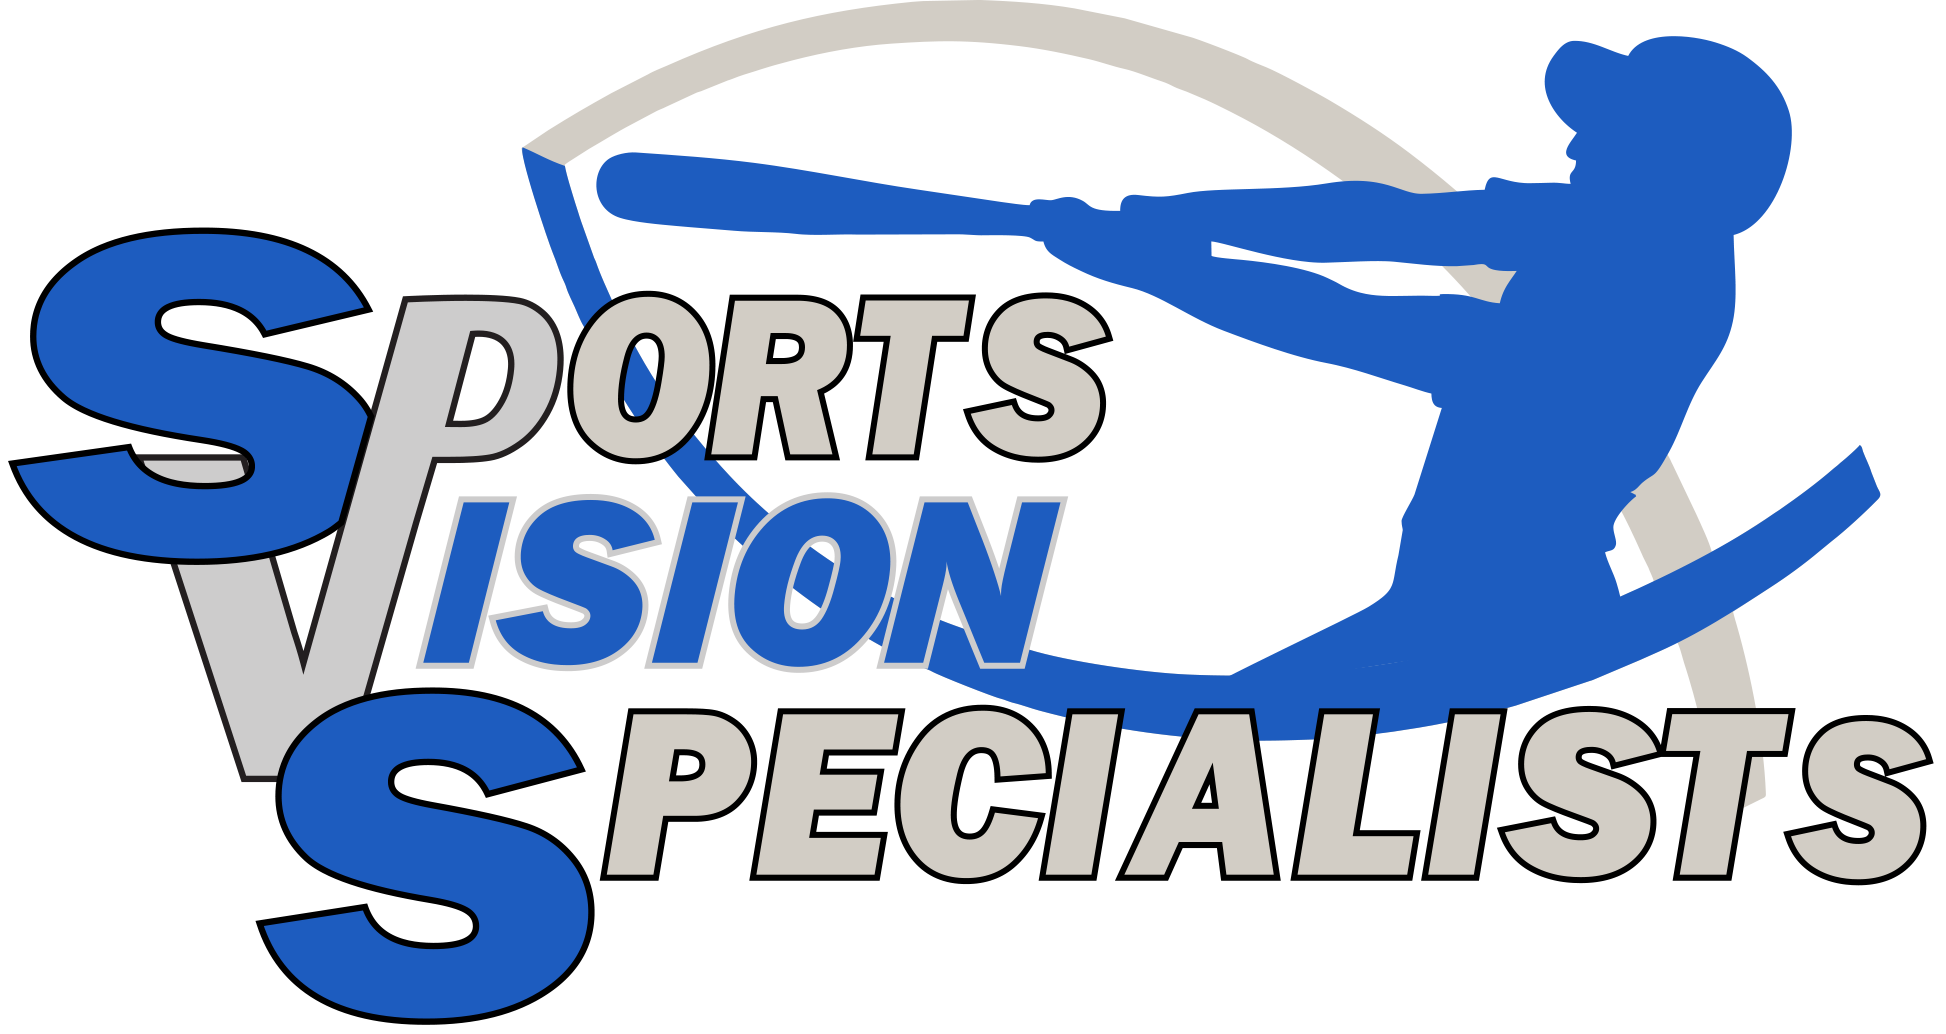 Sports Vision Specialist logo